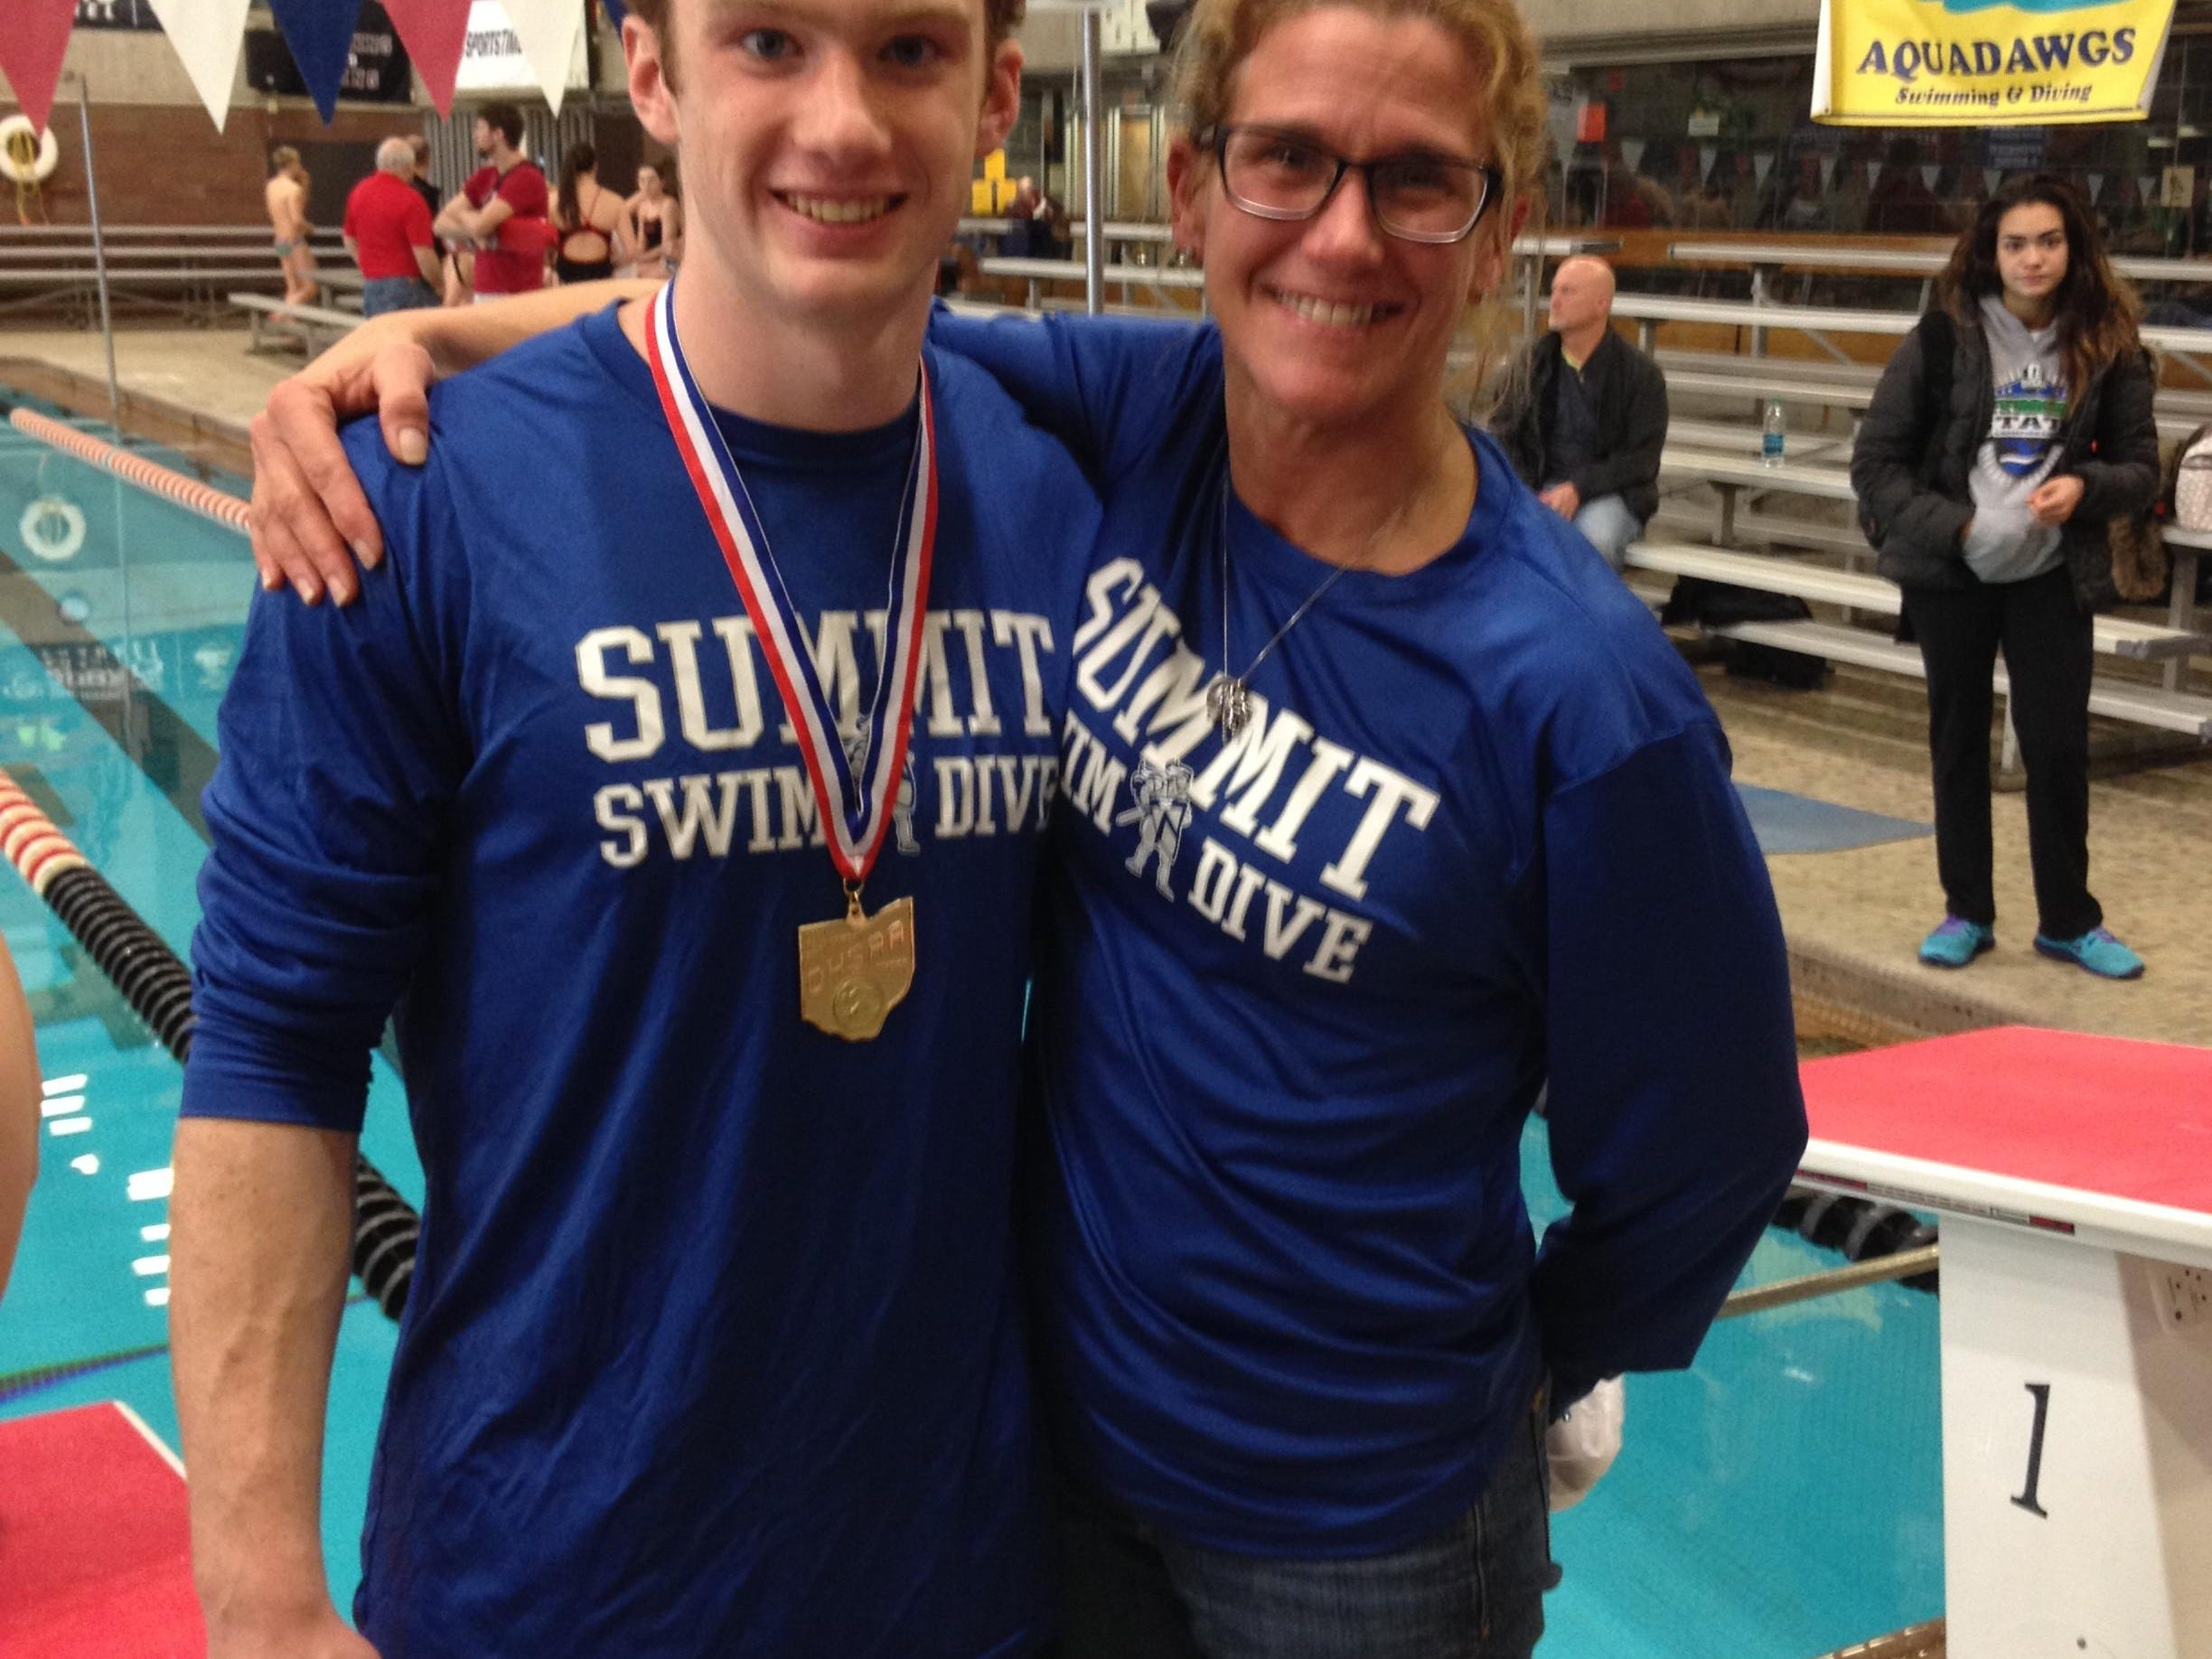 Summit Country Day's newest state champion Stewart Spanbauer celebrates with his diving coach Lori Rapp after winning the the 2015 1-meter diving title. Rapp was recently inducted into the LaRosa's High School Sports Hall of Fame for her diving and coaching accomplishments.